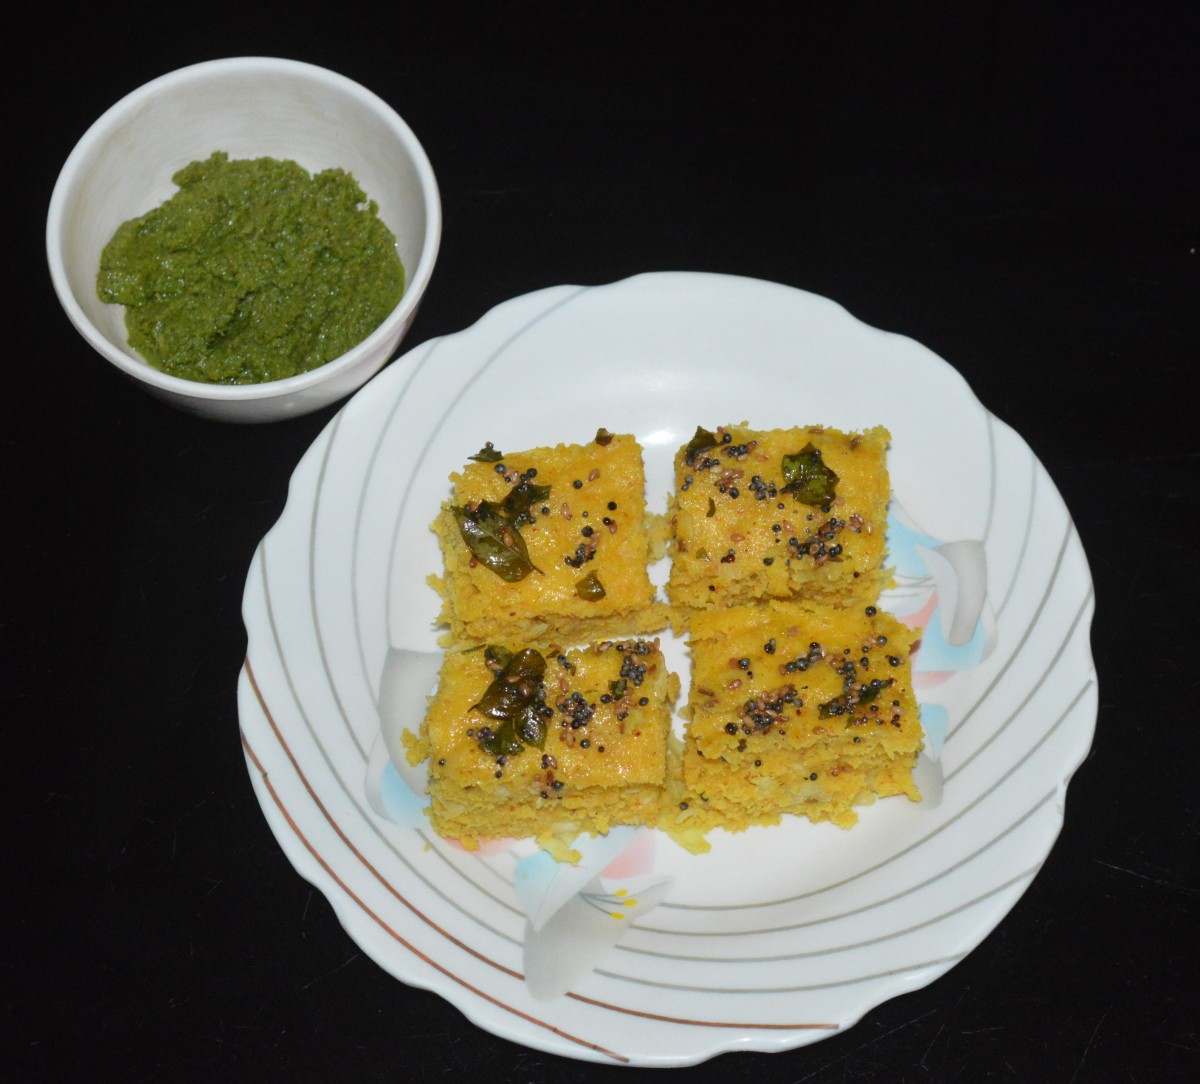 Cut it into equal-sized square pieces. Serve hot with green chutney or tomato sauce. Enjoy this delicious and healthy snack!